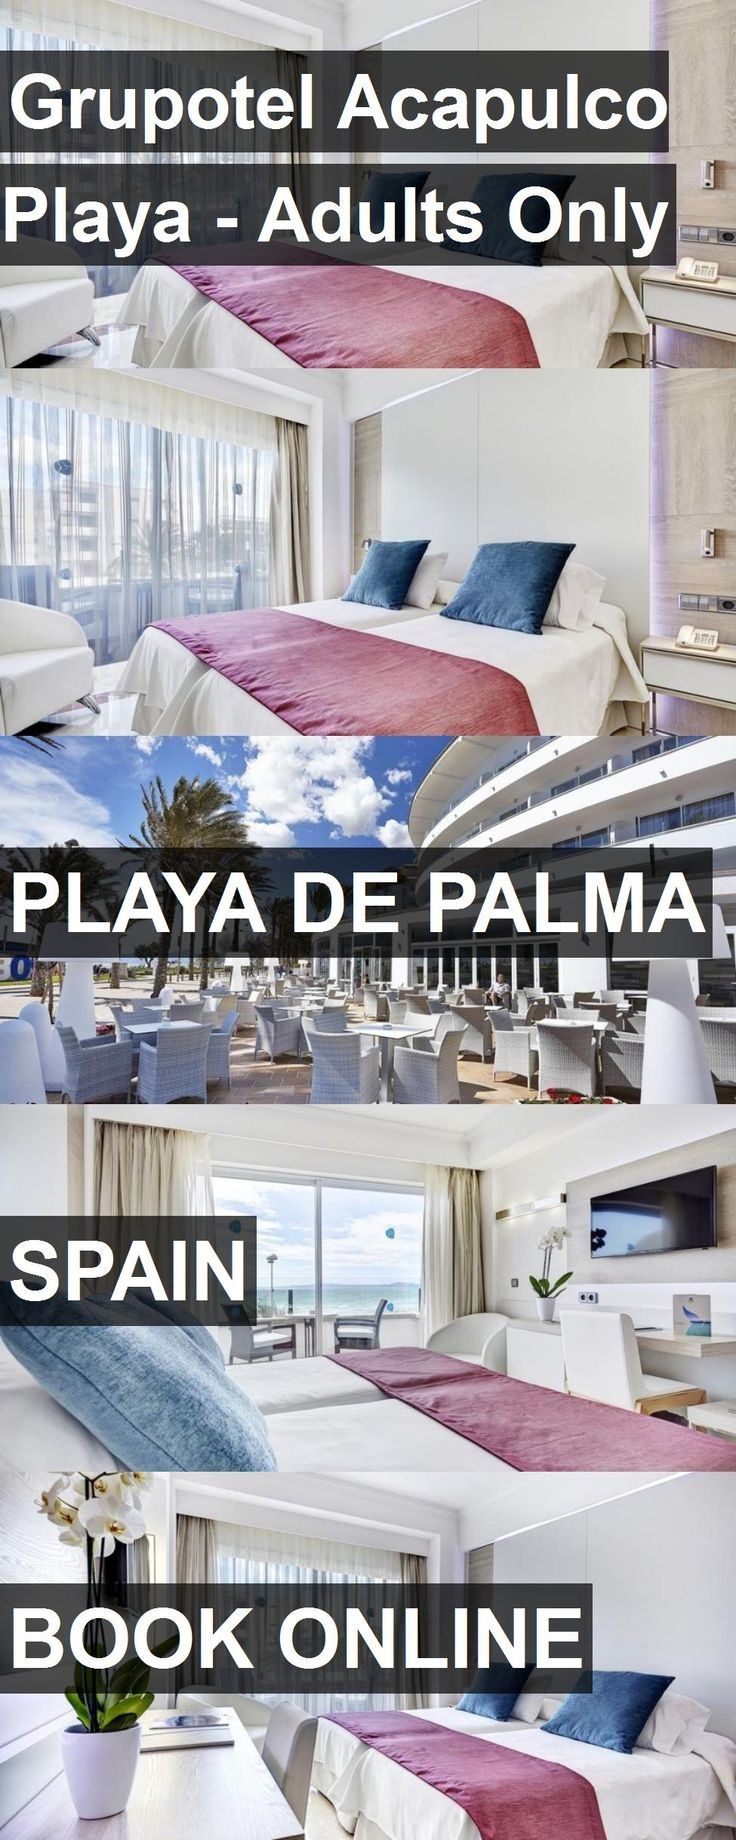 Hotel Grupotel Acapulco Playa - Adults Only in Playa de Palma, Spain. For more information, photos, reviews and best prices please follow the link. #Spain #PlayadePalma #travel #vacation #hotel